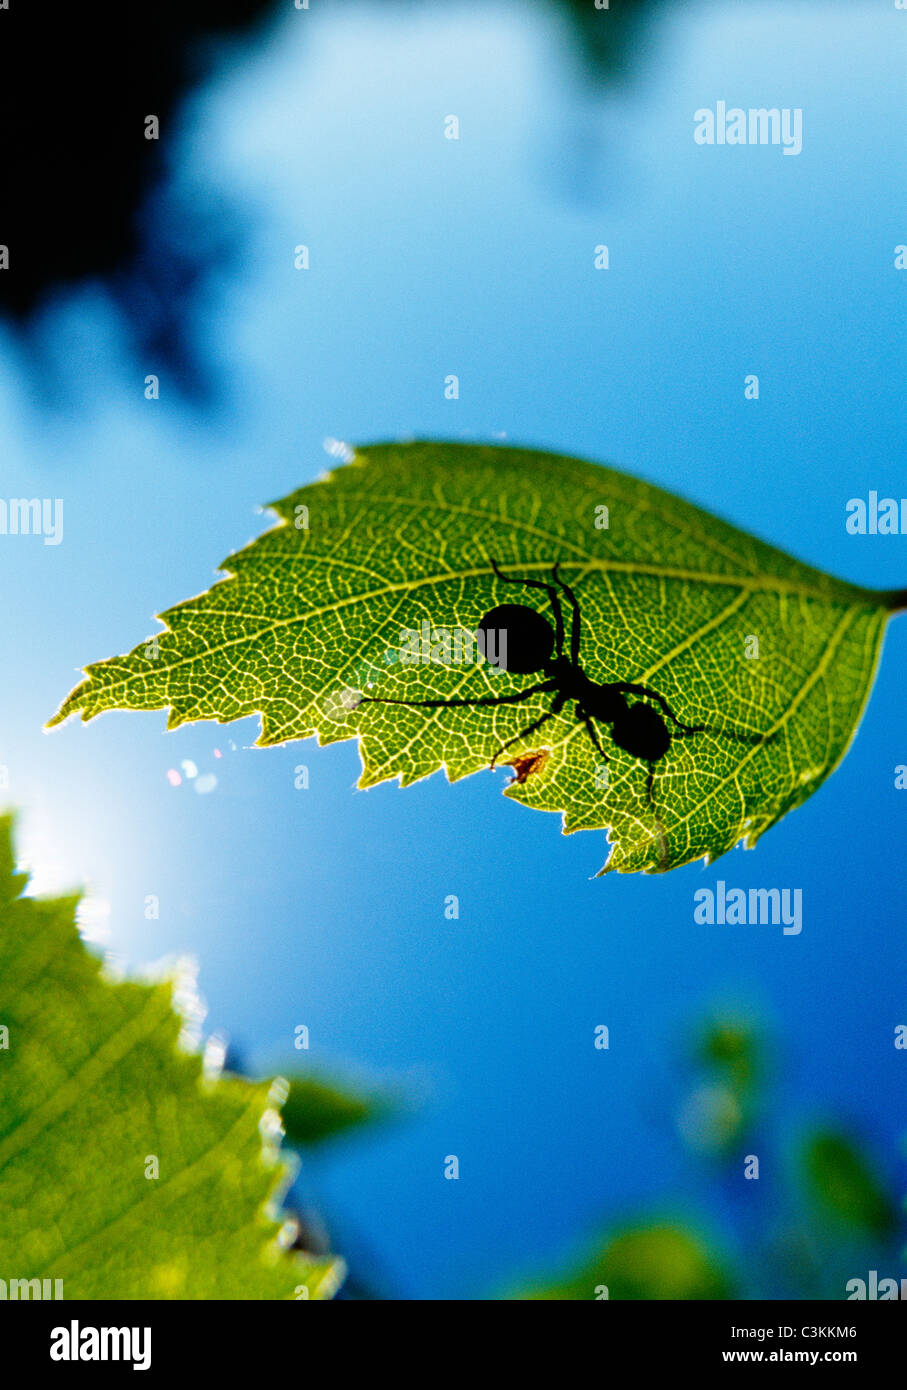 Wood ant on leaf with sunlight falling on it - Stock Image